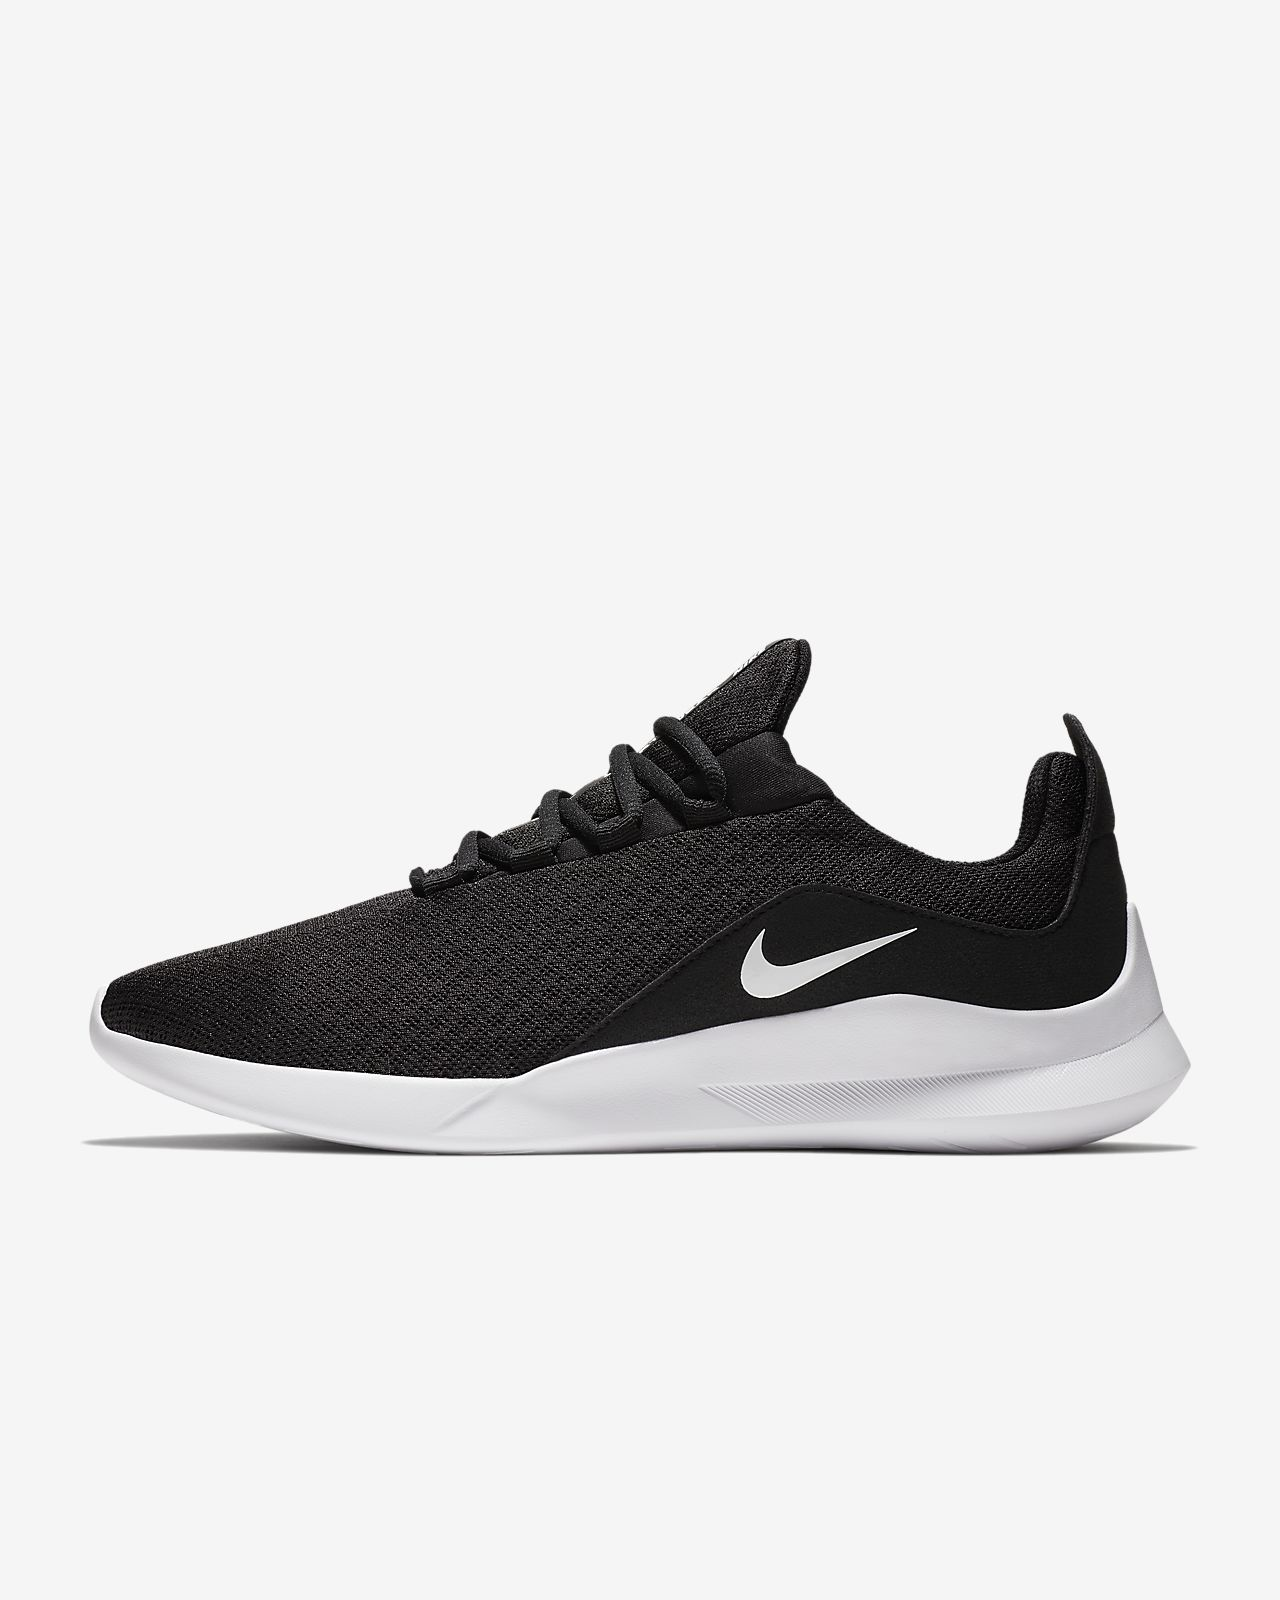 6dd73d5244c3 Nike Viale Men s Shoe. Nike.com GB